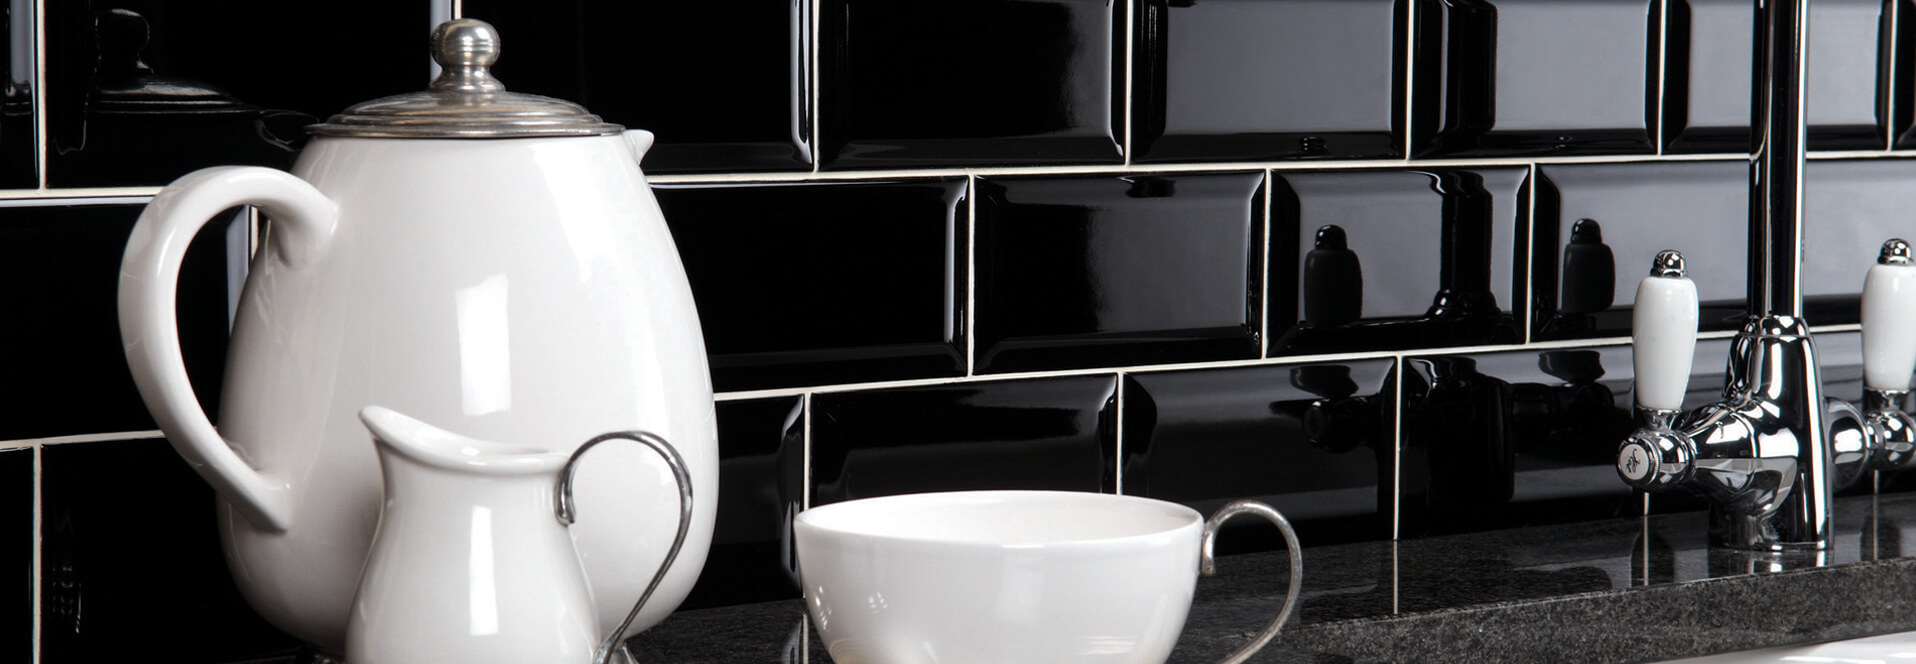 Kettle on kitchen surface